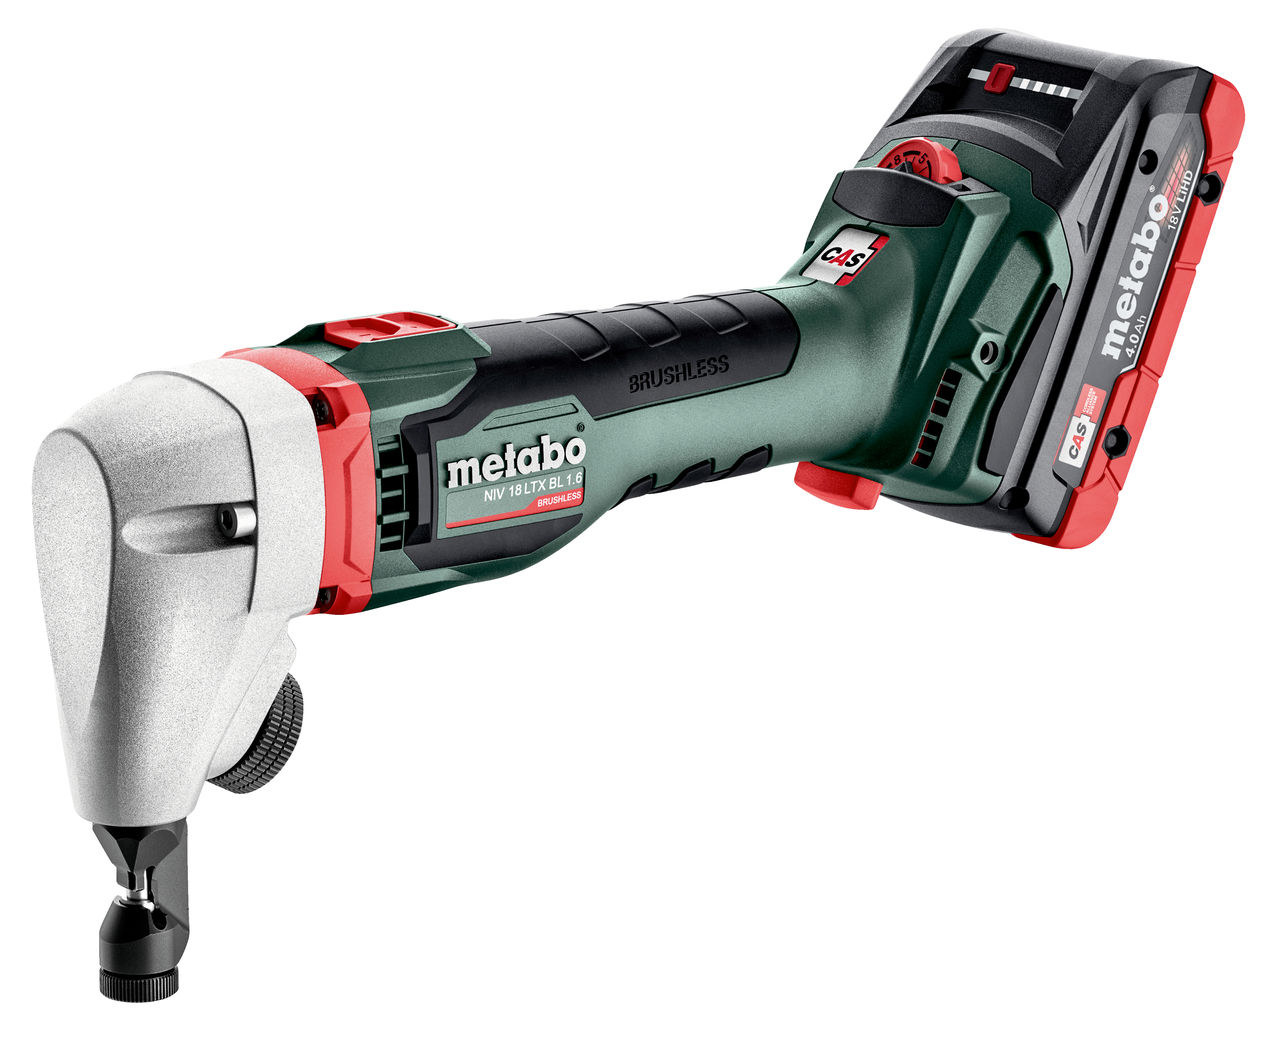 New Cordless Shears And Nibbler From Metabo Metabo Power Tools